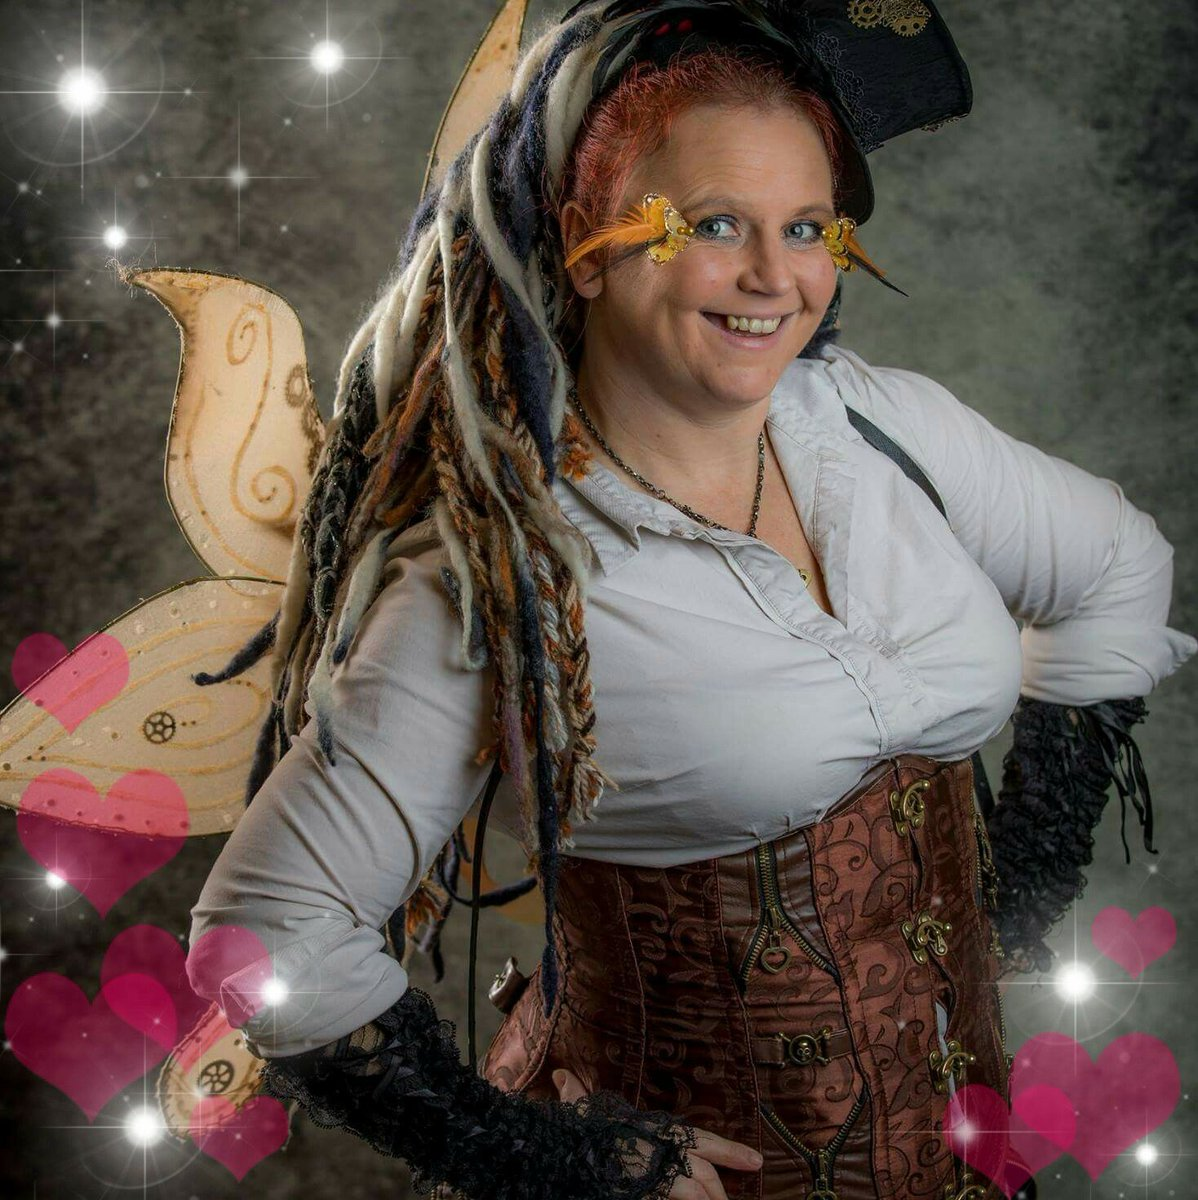 Inspire happiness #happy #smiles #inspirational #cosplayergirl #gypsygirl #steampunkgirl #steampunkfashion #steampunk #Splendid #magicaltimes #positive #staypositive #sparkles #Cosplay #Believe #magicalmemories #mylifeinpictures https://t.co/SUfx6Mdy36